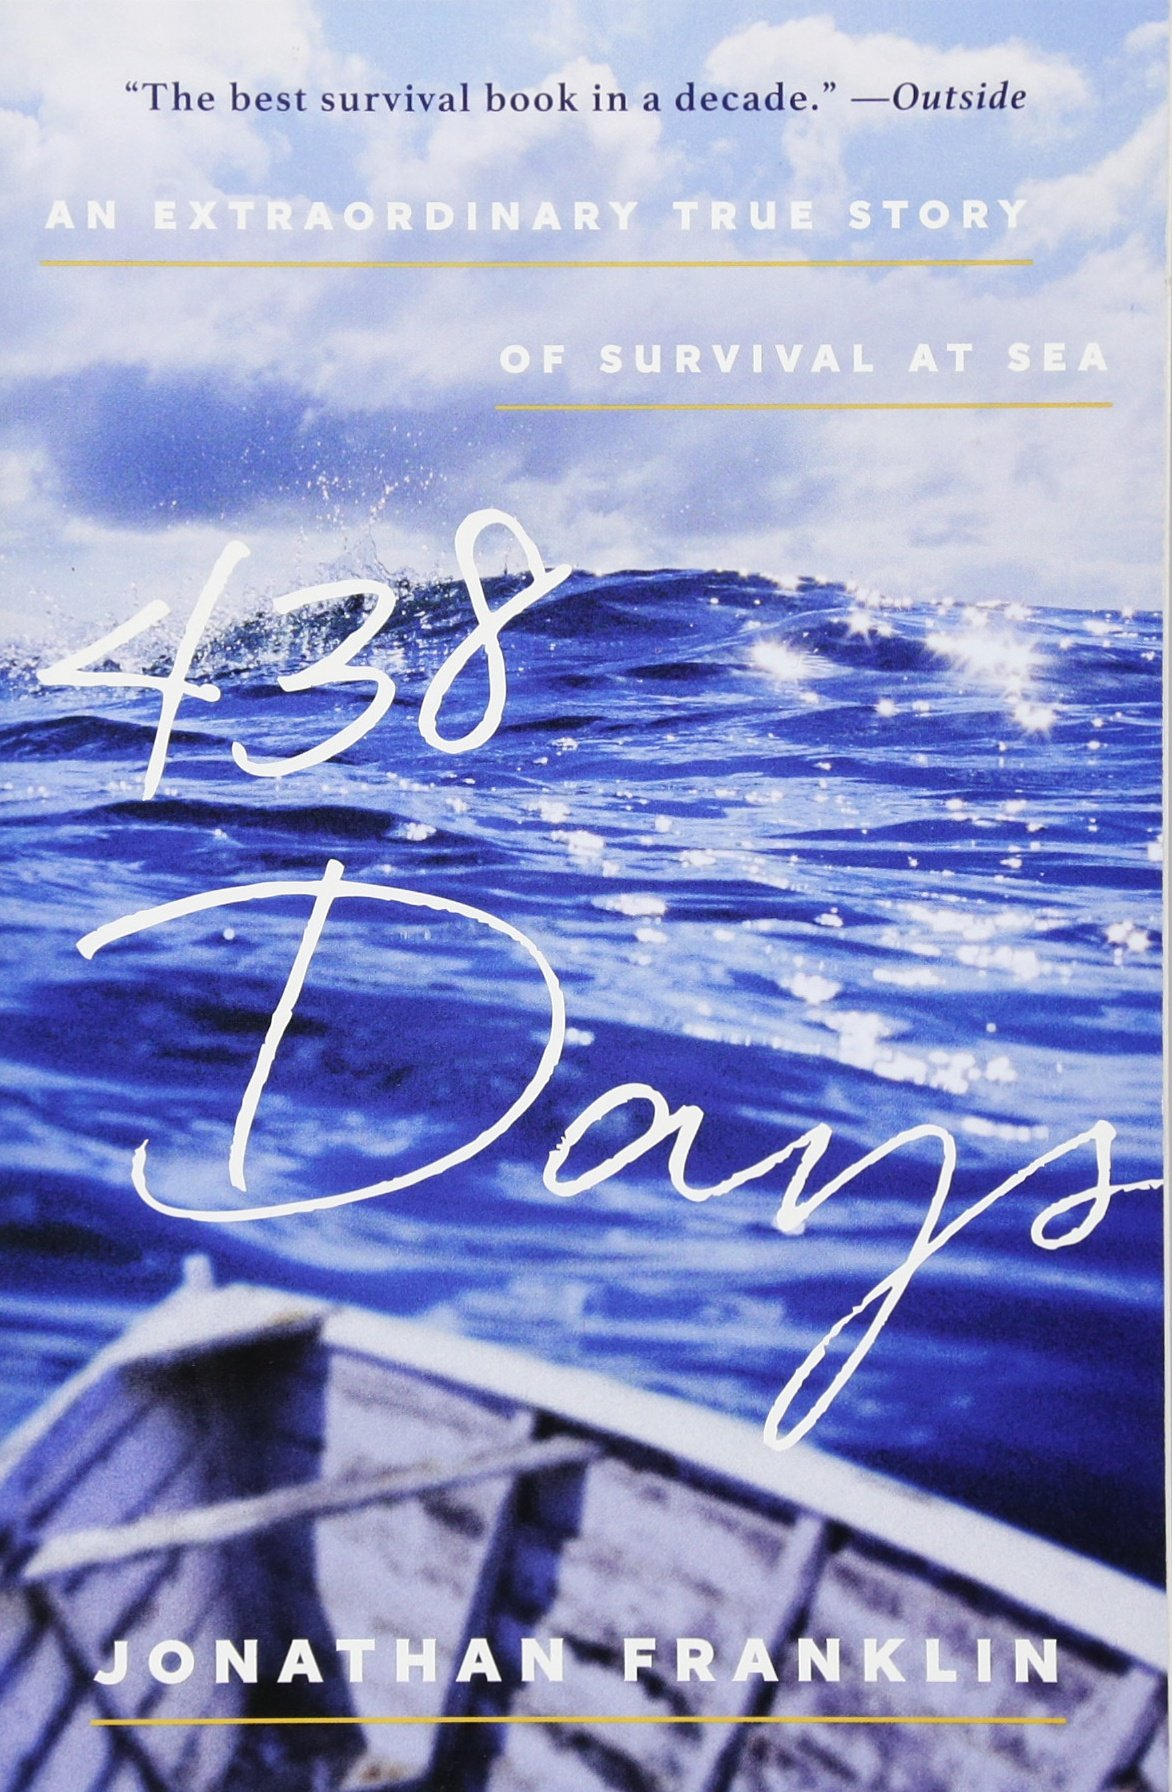 An Extraordinary True Story of Survival at Sea - Jonathan Franklin